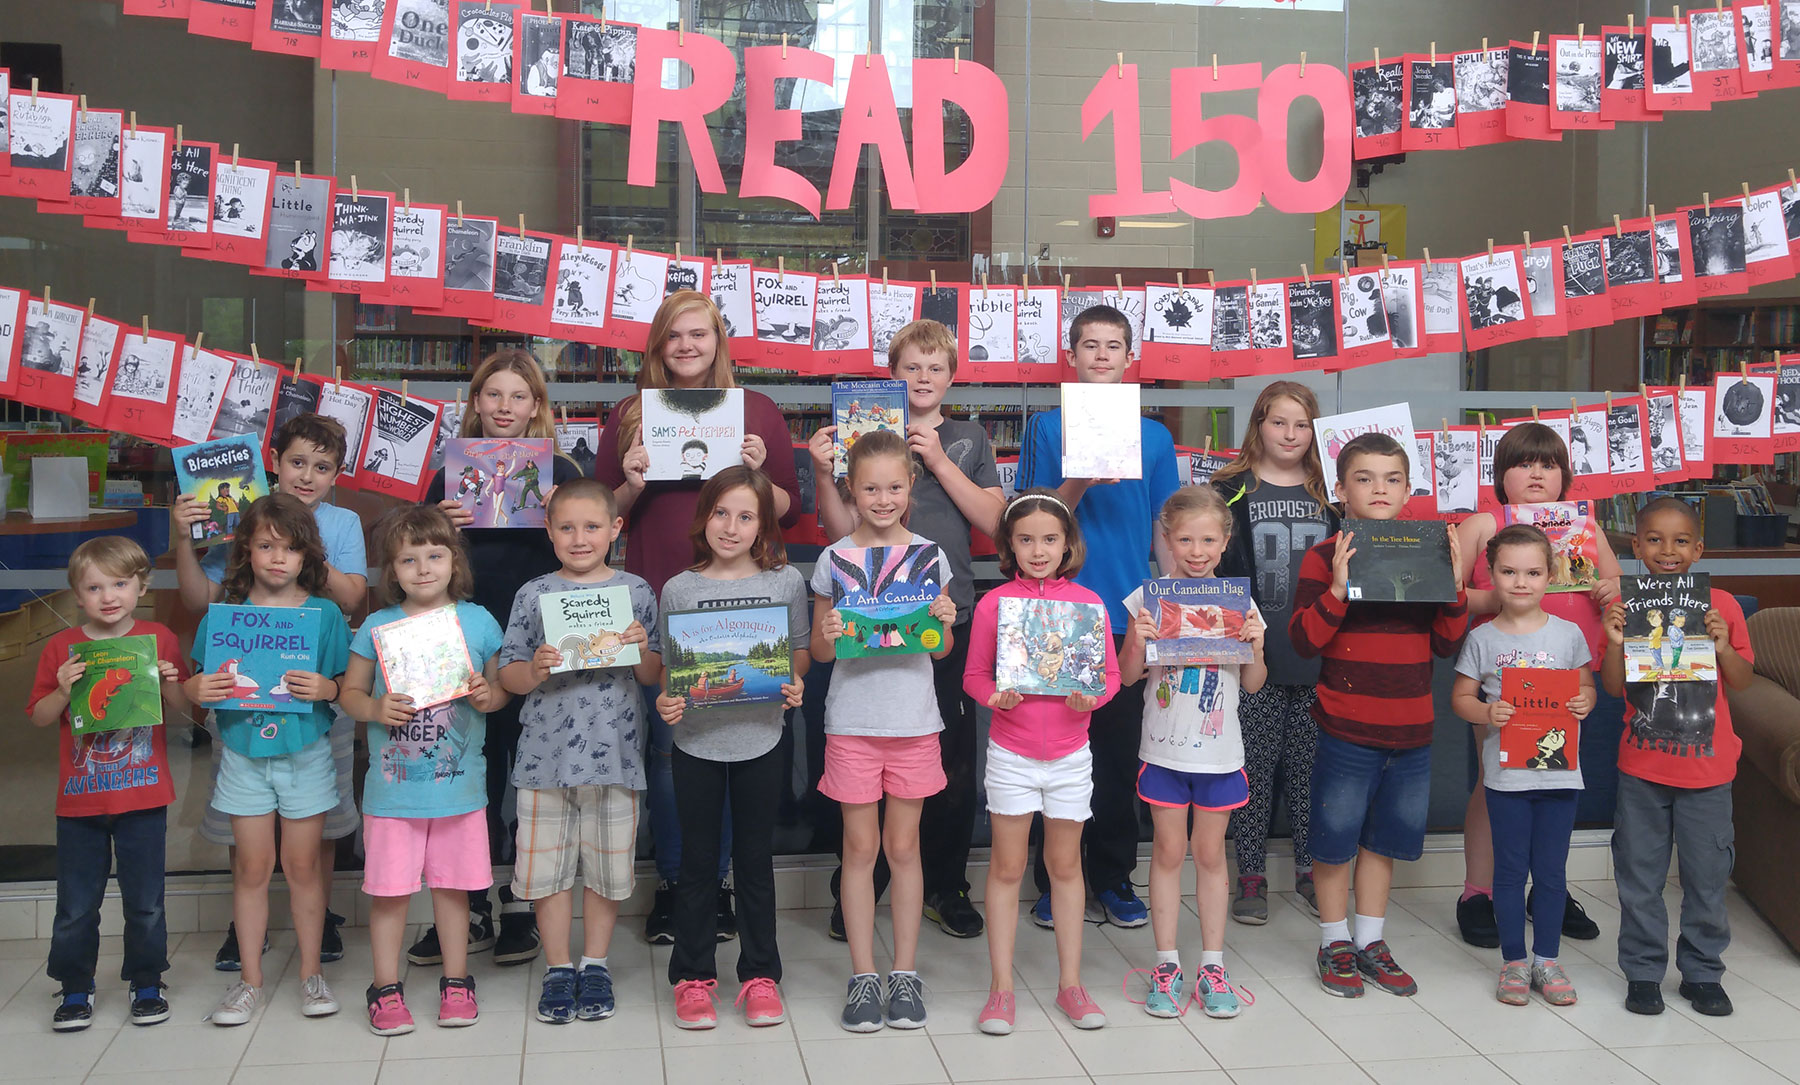 Pictured are some students from each division at Tweed Elementary School. The whole school participated in Read 150 where they read 150 books by Canadian authors during the month of June 2017.